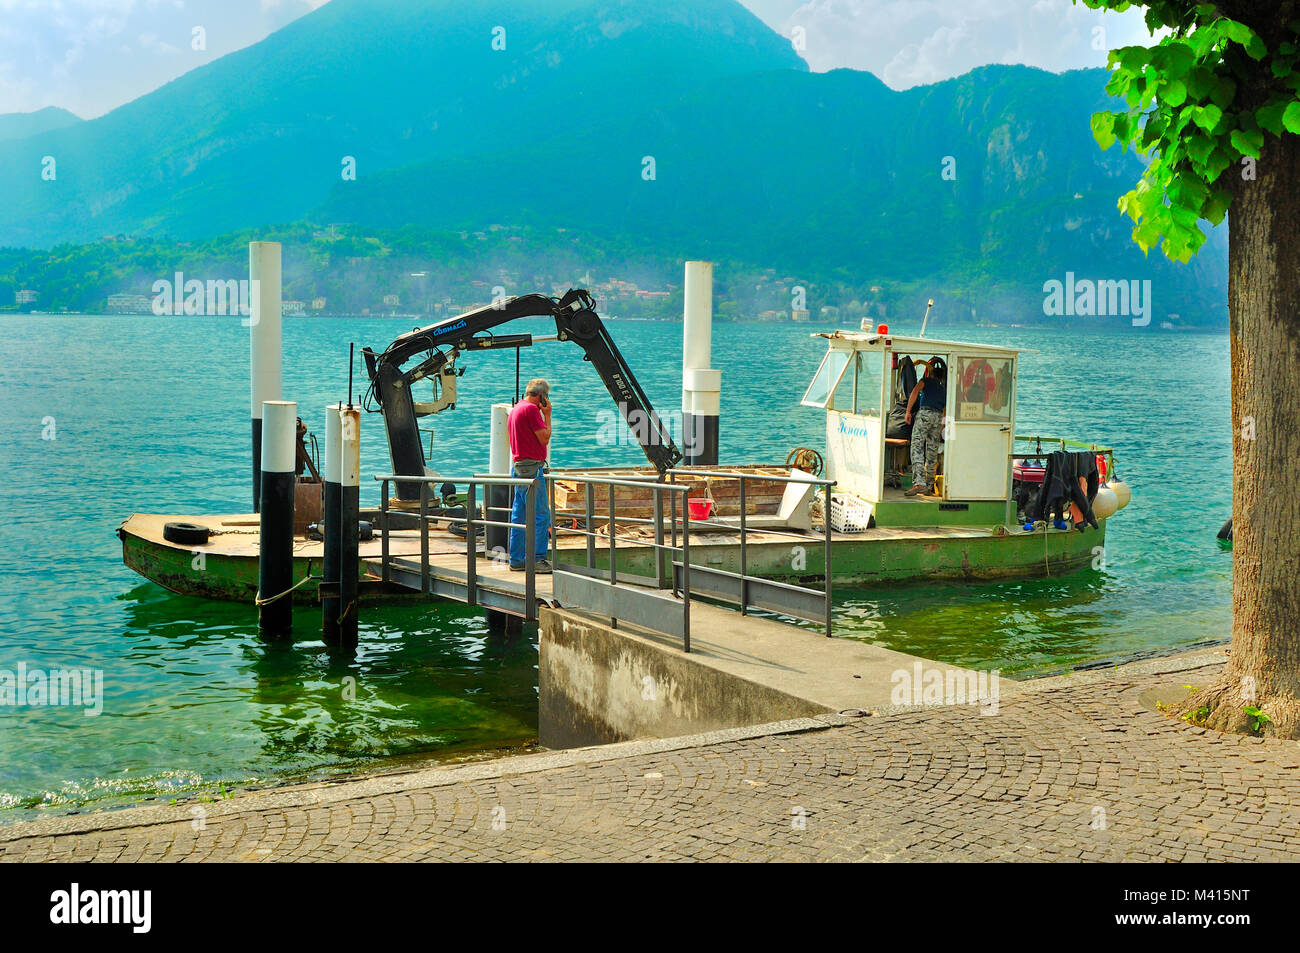 Freight carrying boat loaded with building materials berthed on Lake Como, Italy - Stock Image